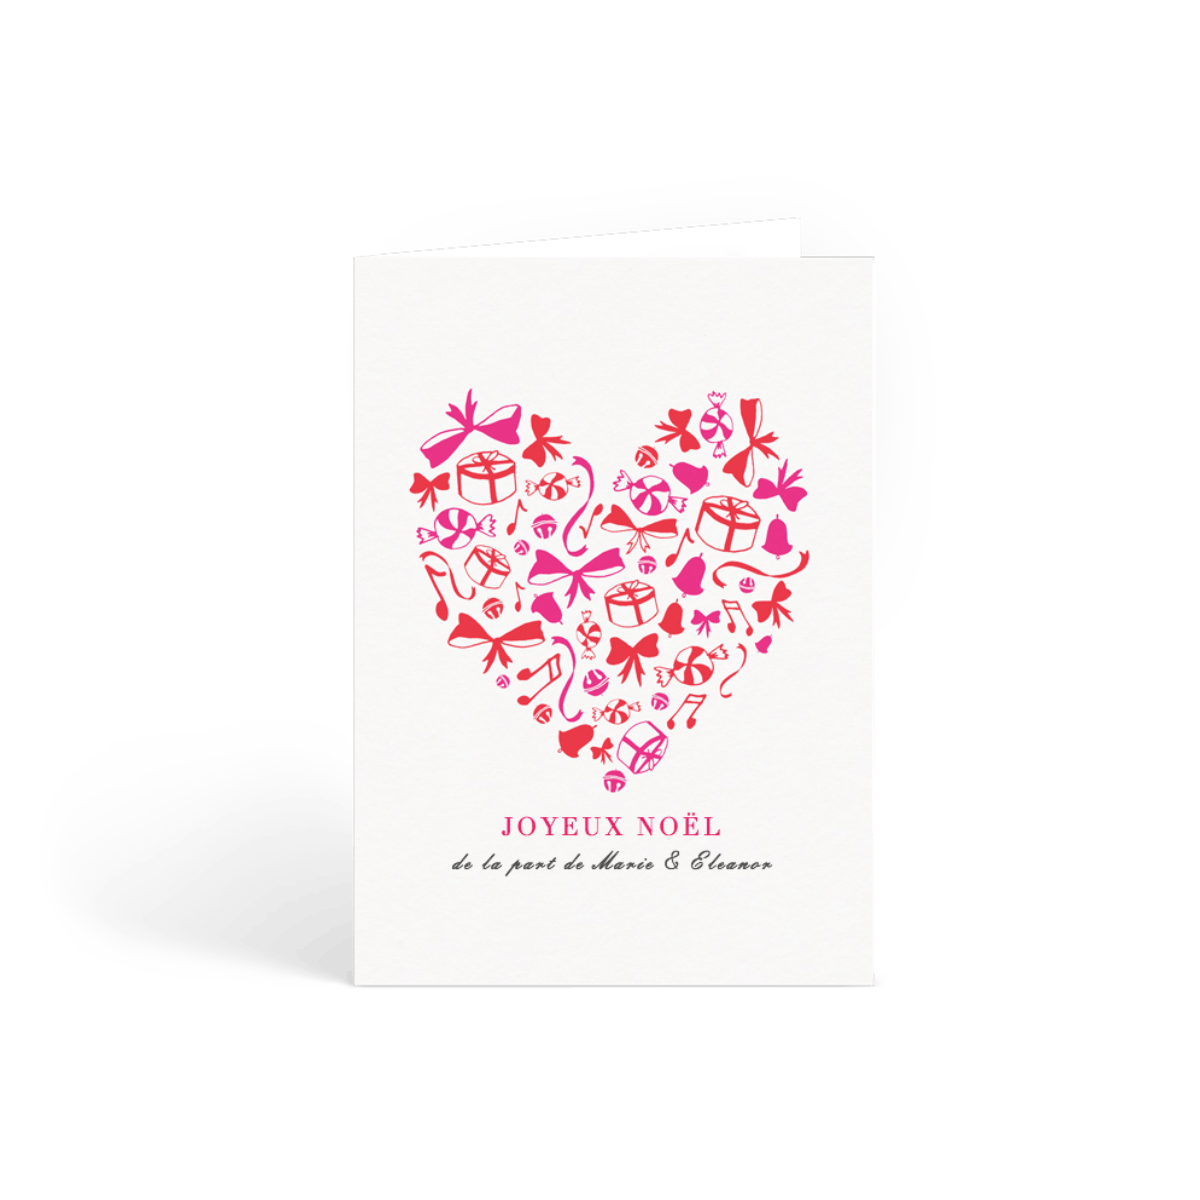 Https%3a%2f%2fwww.papier.com%2fproduct image%2f47008%2f2%2fbows sweets heart 682 avant 1537276836.png?ixlib=rb 1.1